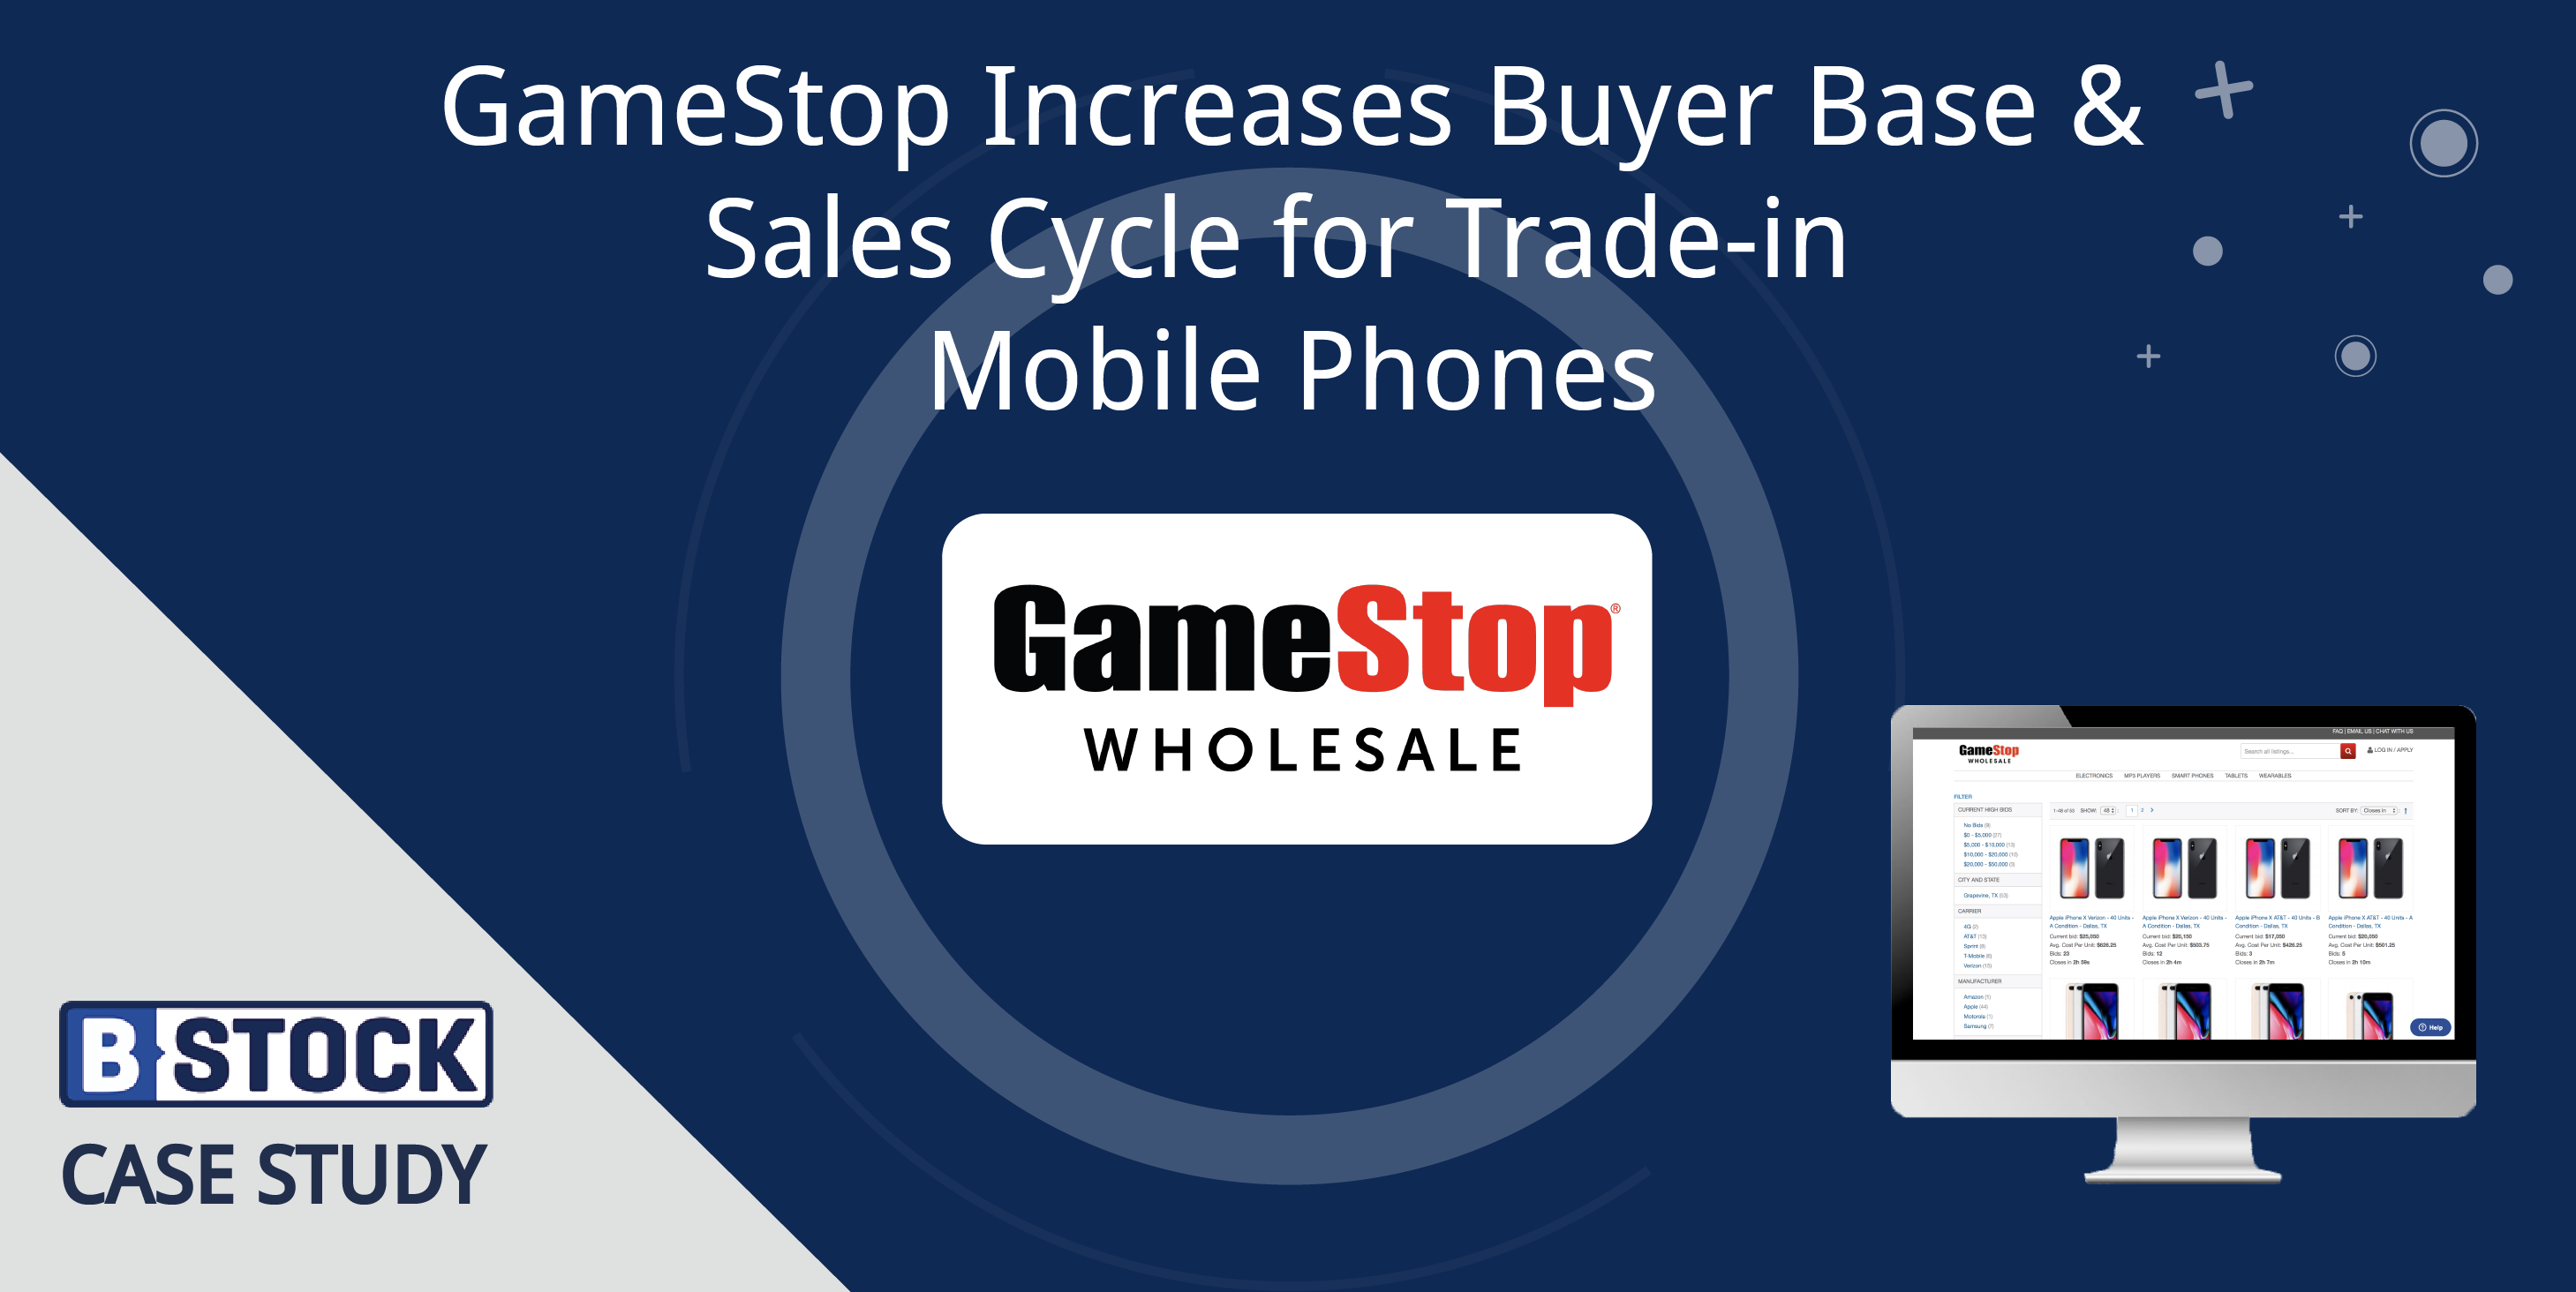 GameStop Increases Buyer Base and Sales Cycle for Trade-in Mobile Phones – Case Study